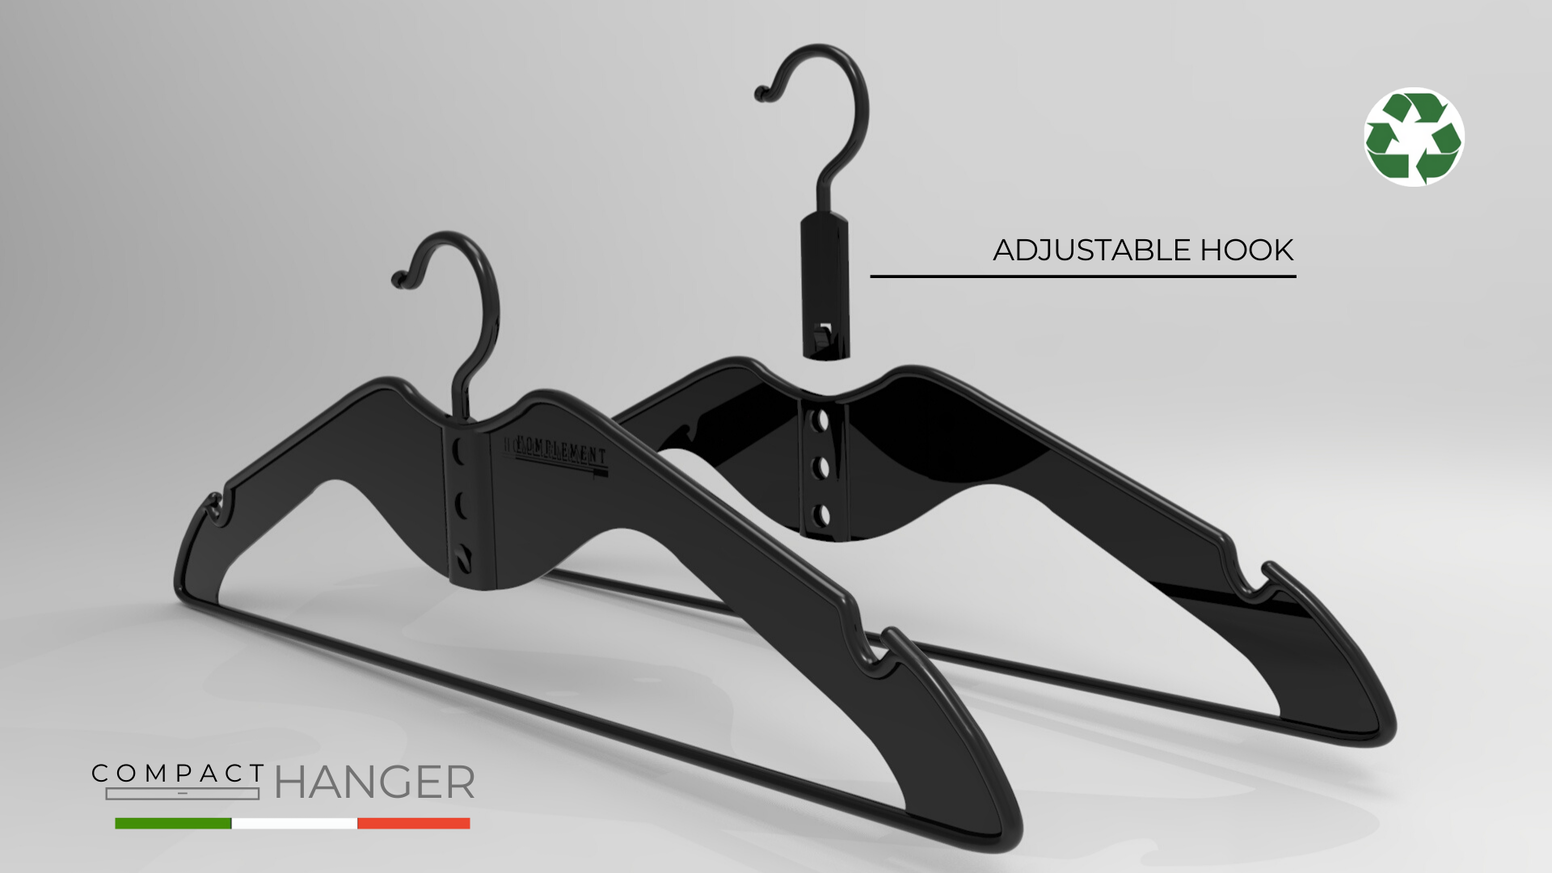 Designed to make your home more organized | Thanks to the 3-levels adjustable hook, it perfectly fits with collared shirts